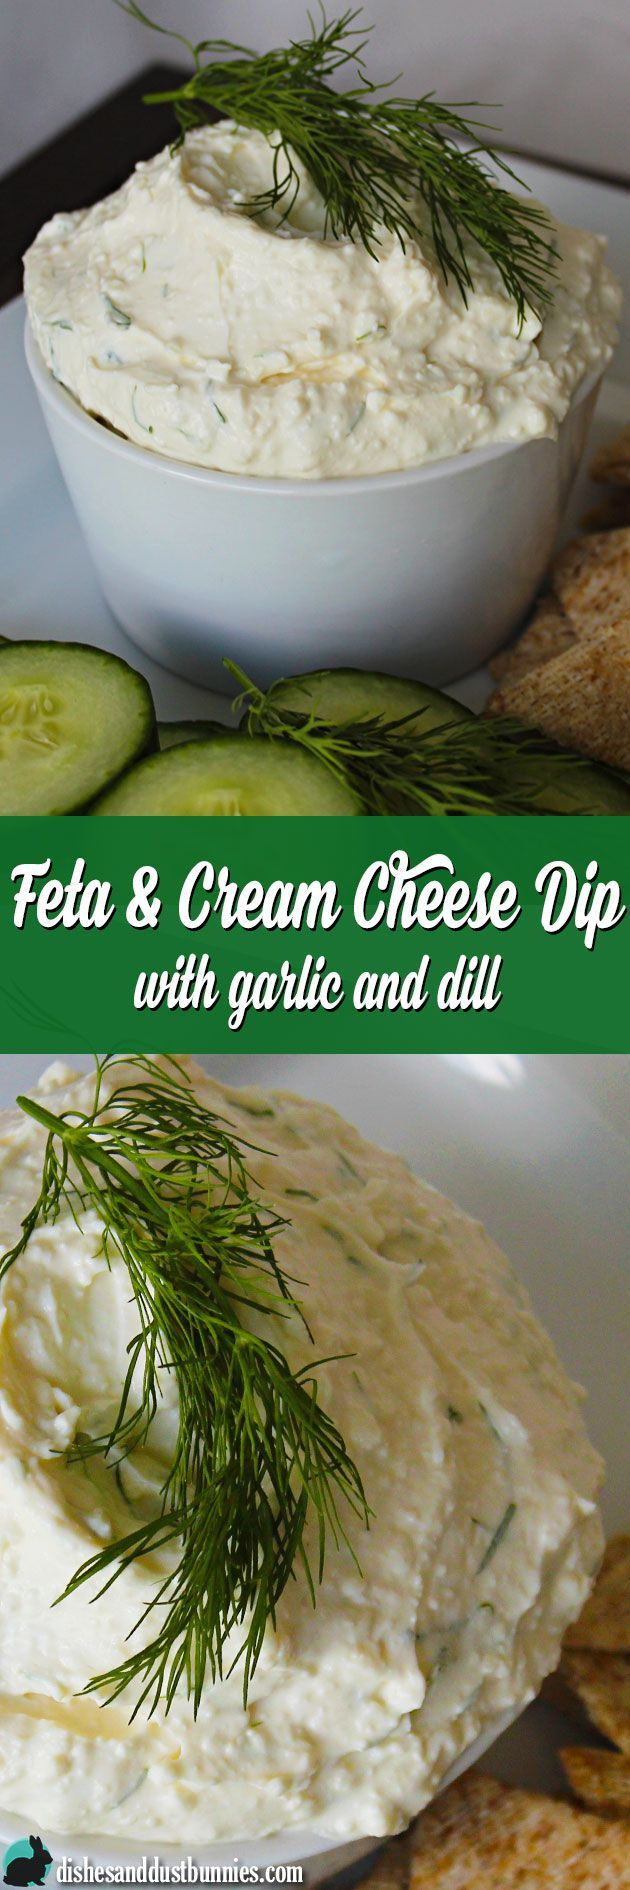 Feta and Cream Cheese Dip with Garlic and Dill from dishesanddustbunnies.com